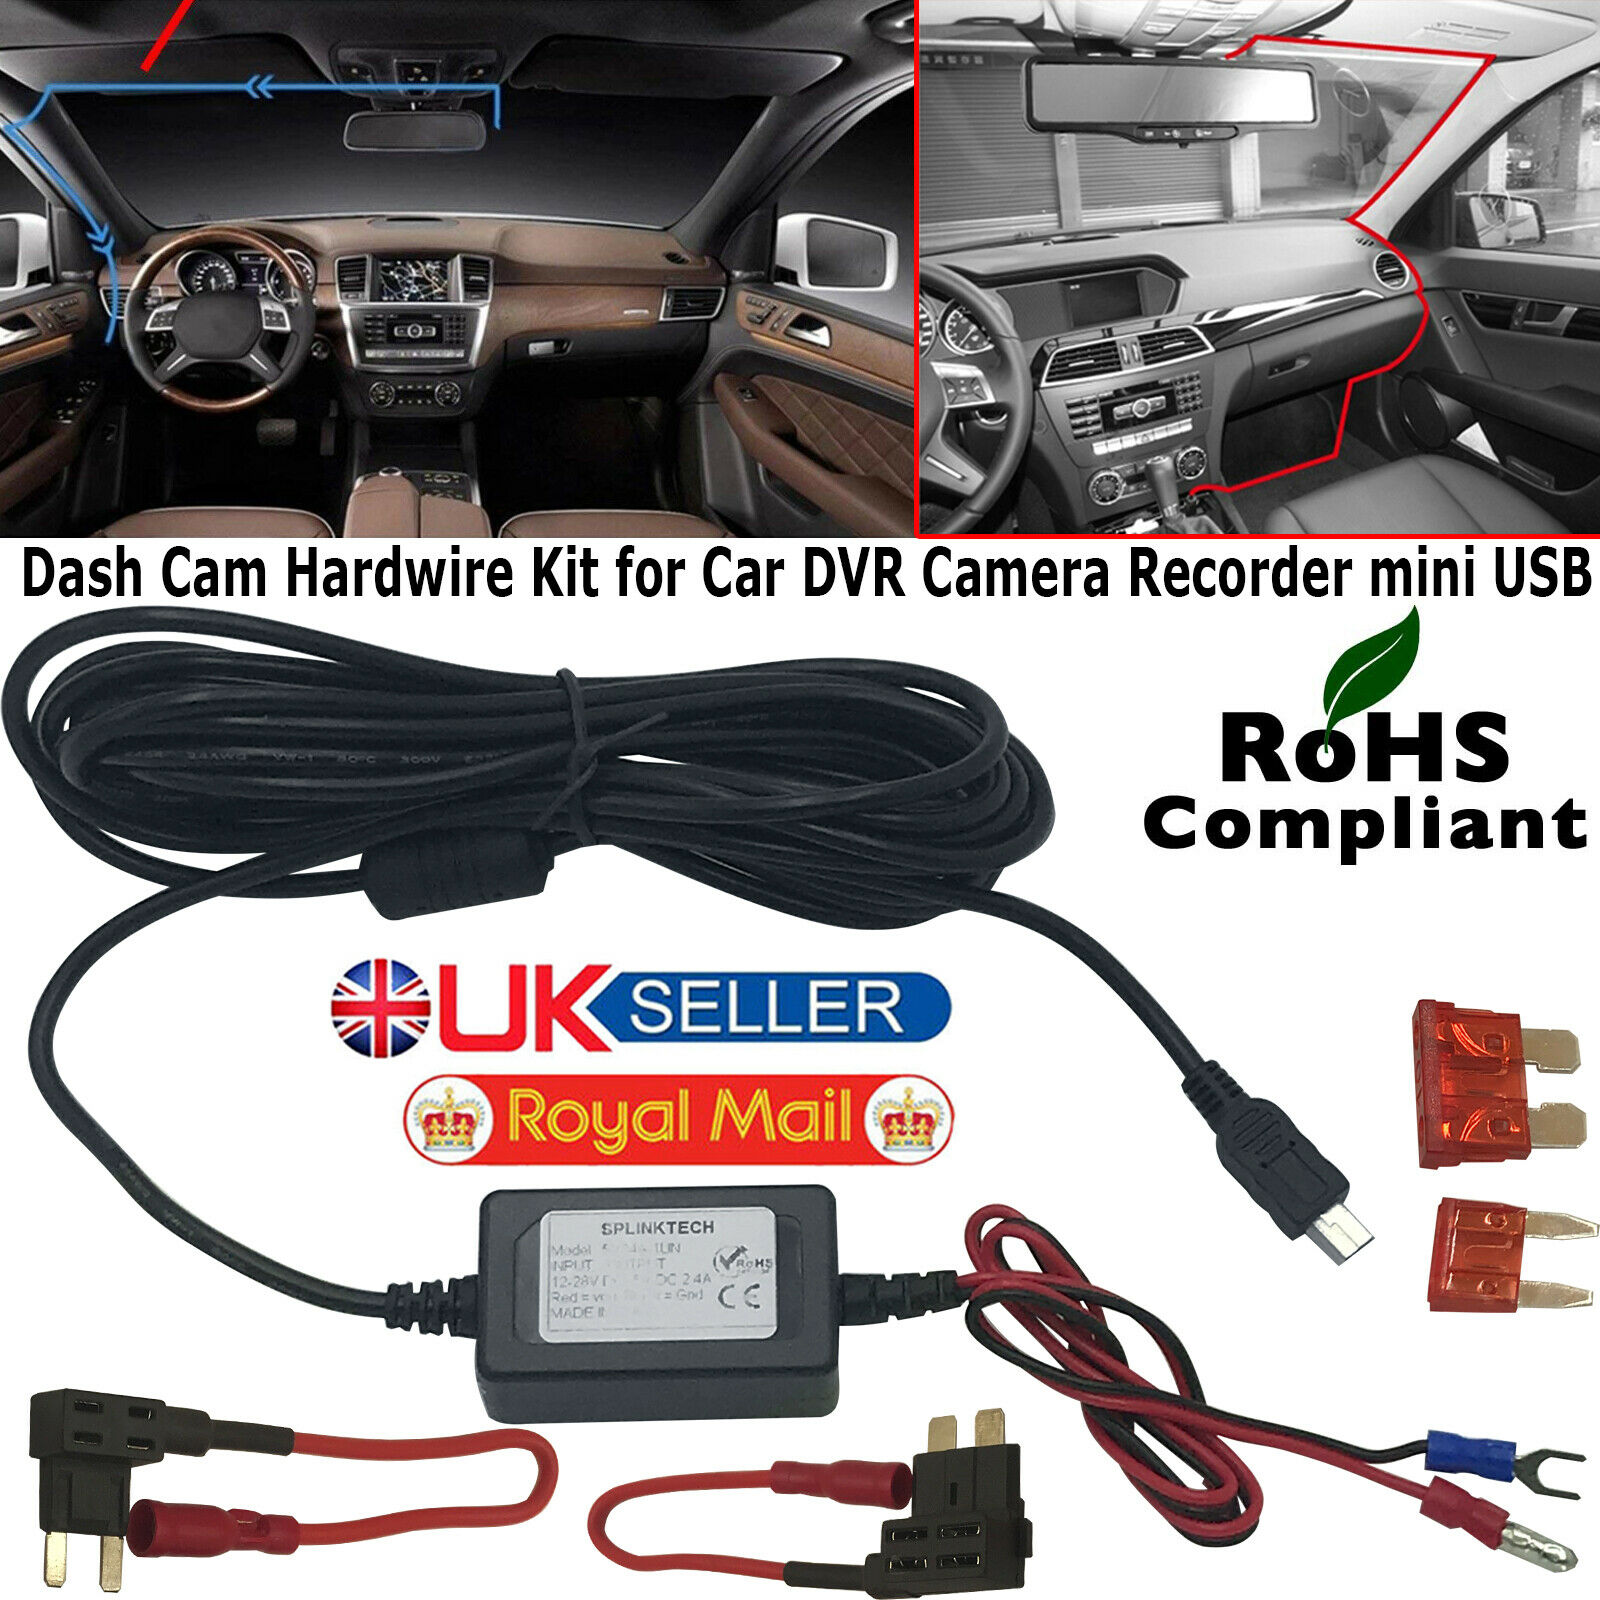 Cam Hardwire Kit Dash Cams Mini Usb